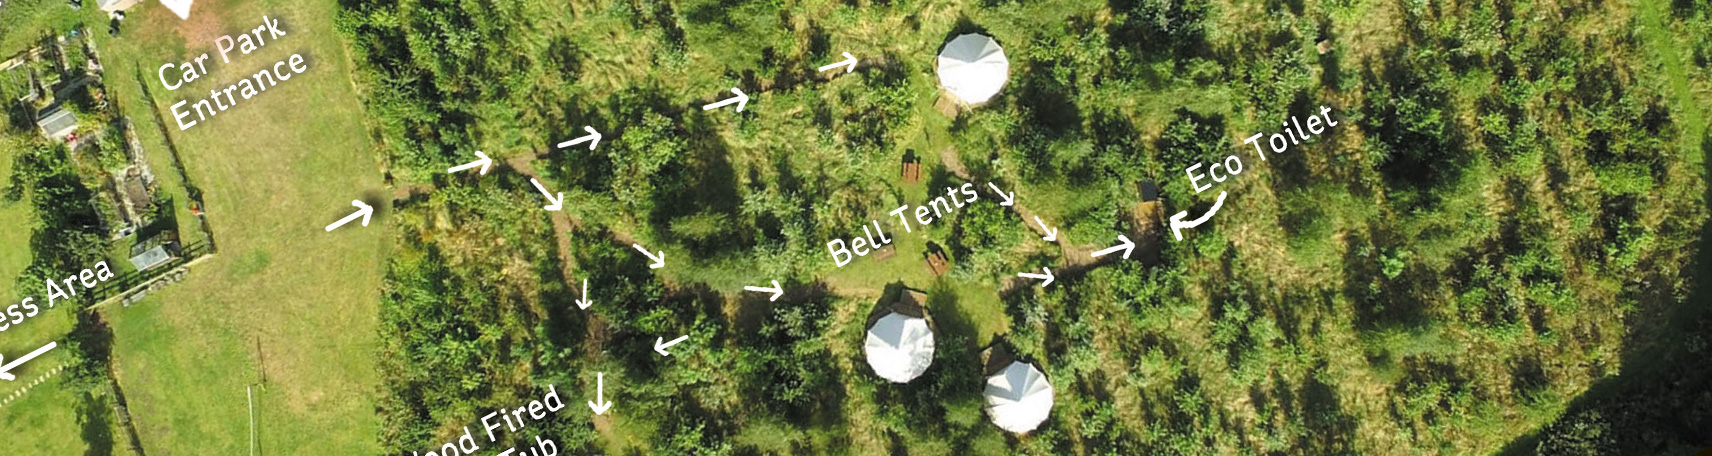 A map of the camping area with Bell Tents at The Grange